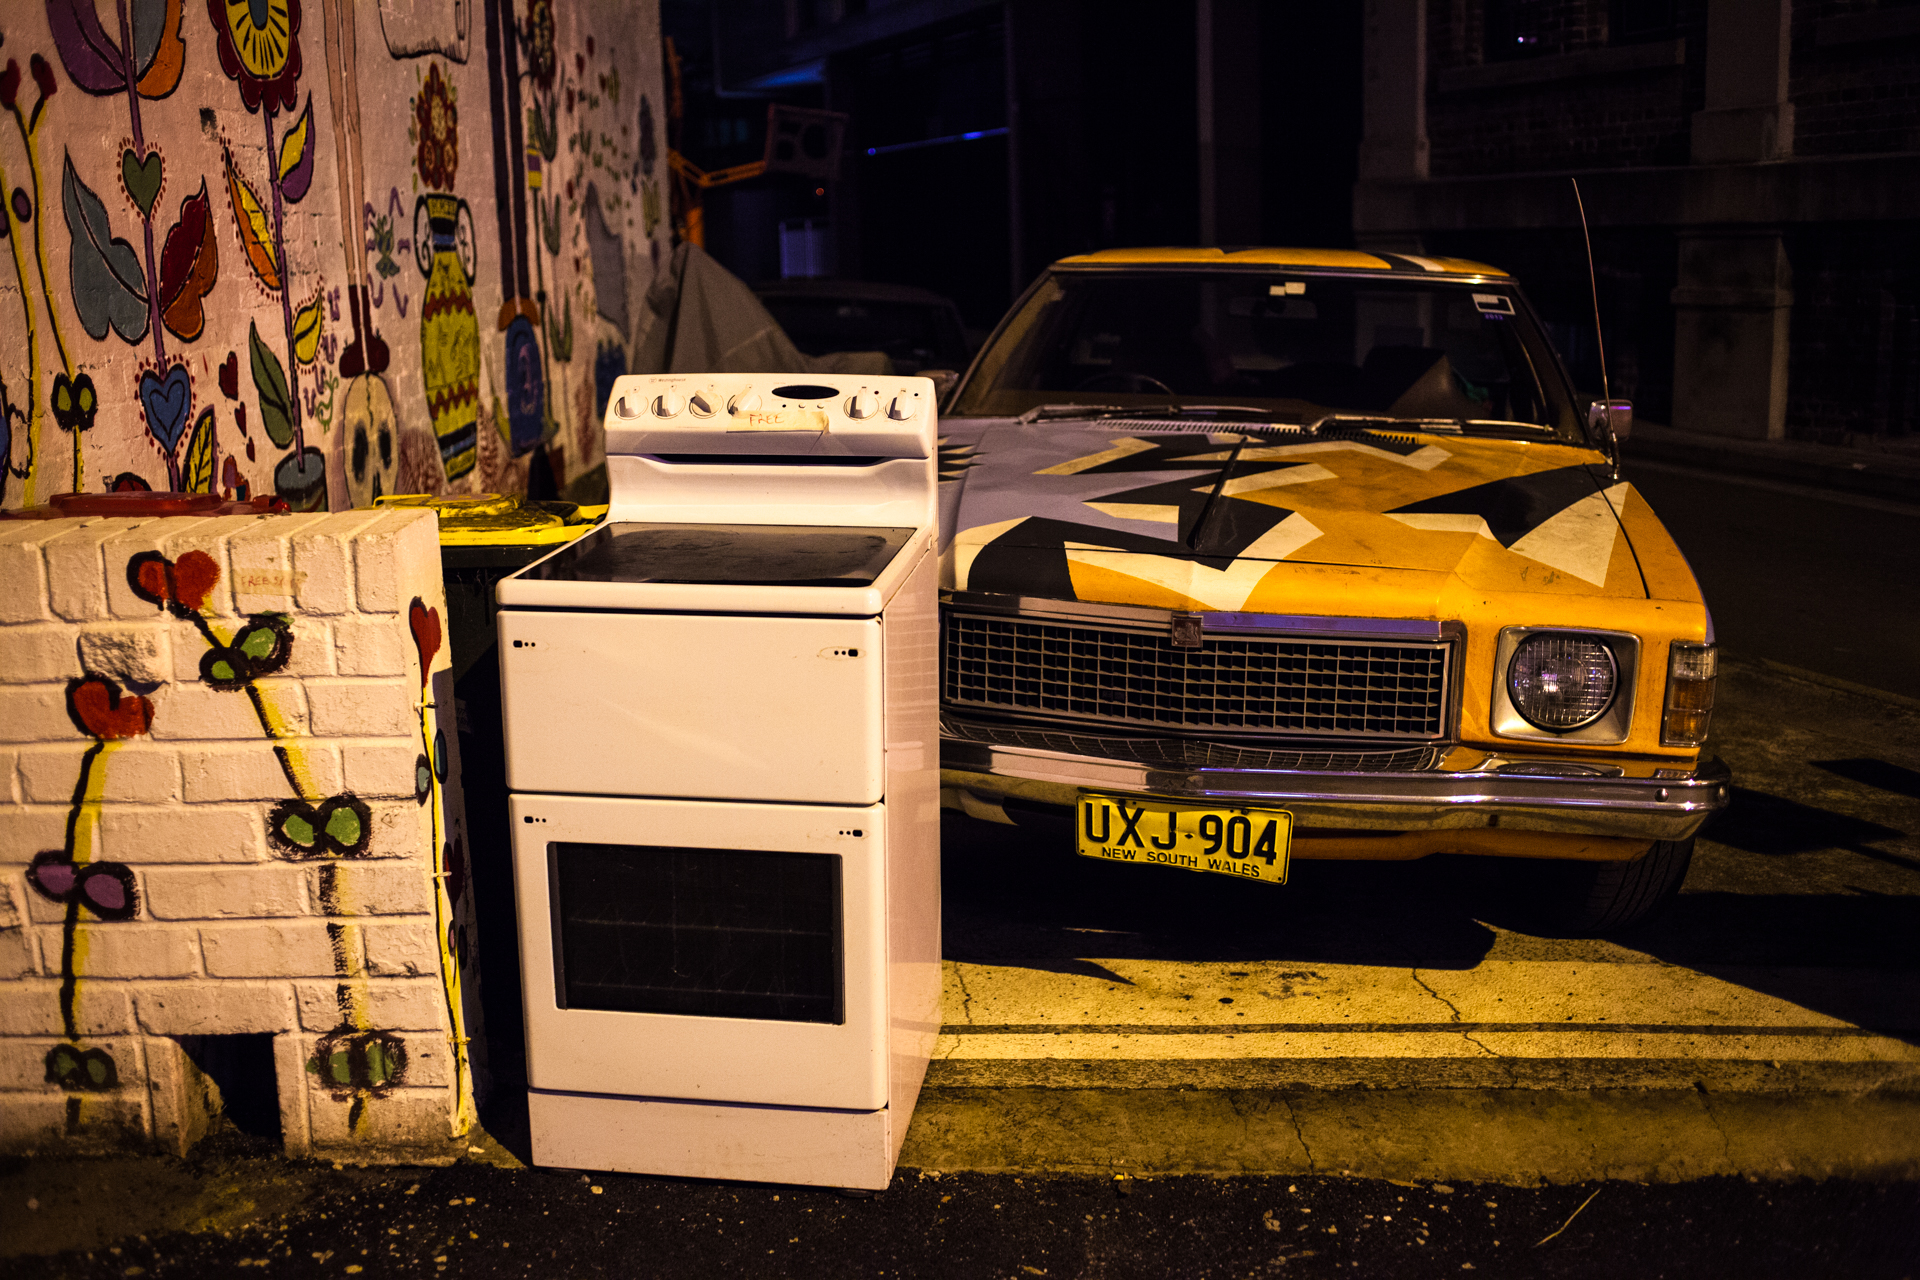 You could everything while walking around night Sydney